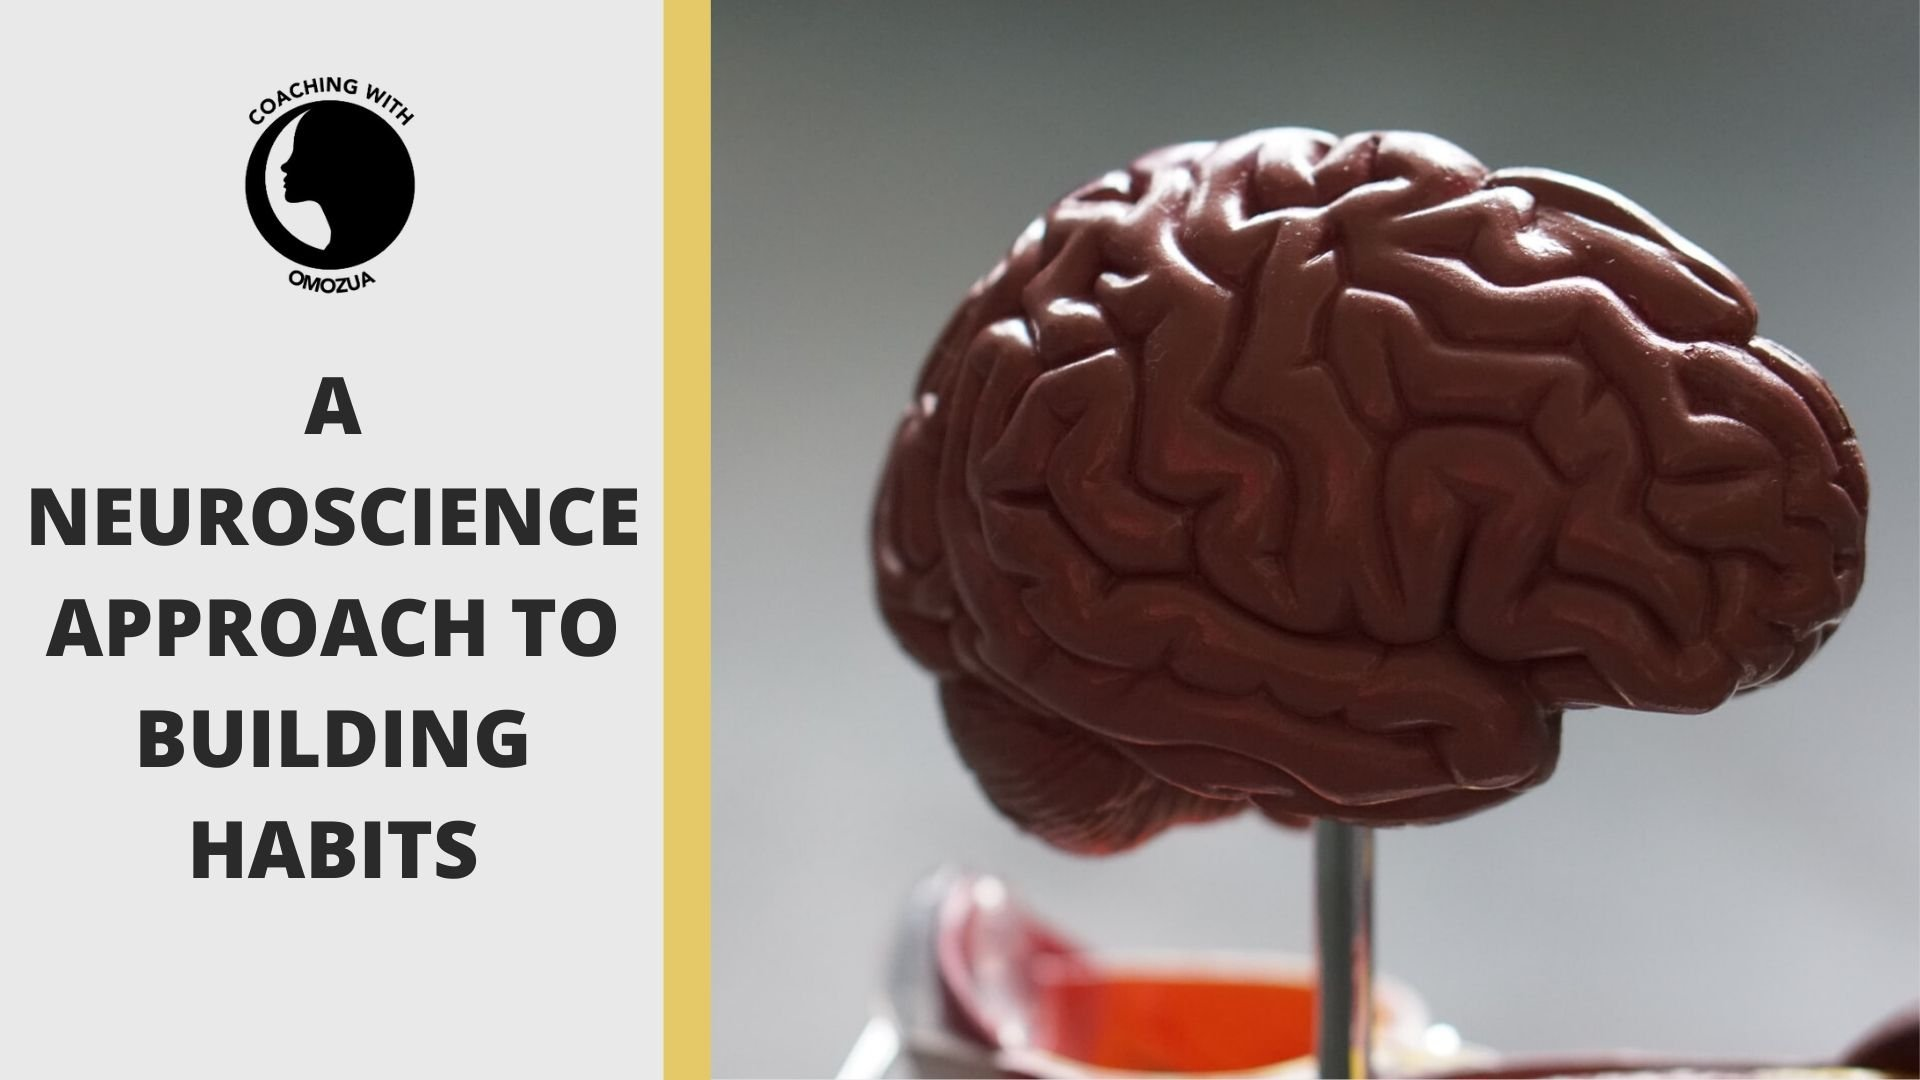 A neuroscience approach to building habits